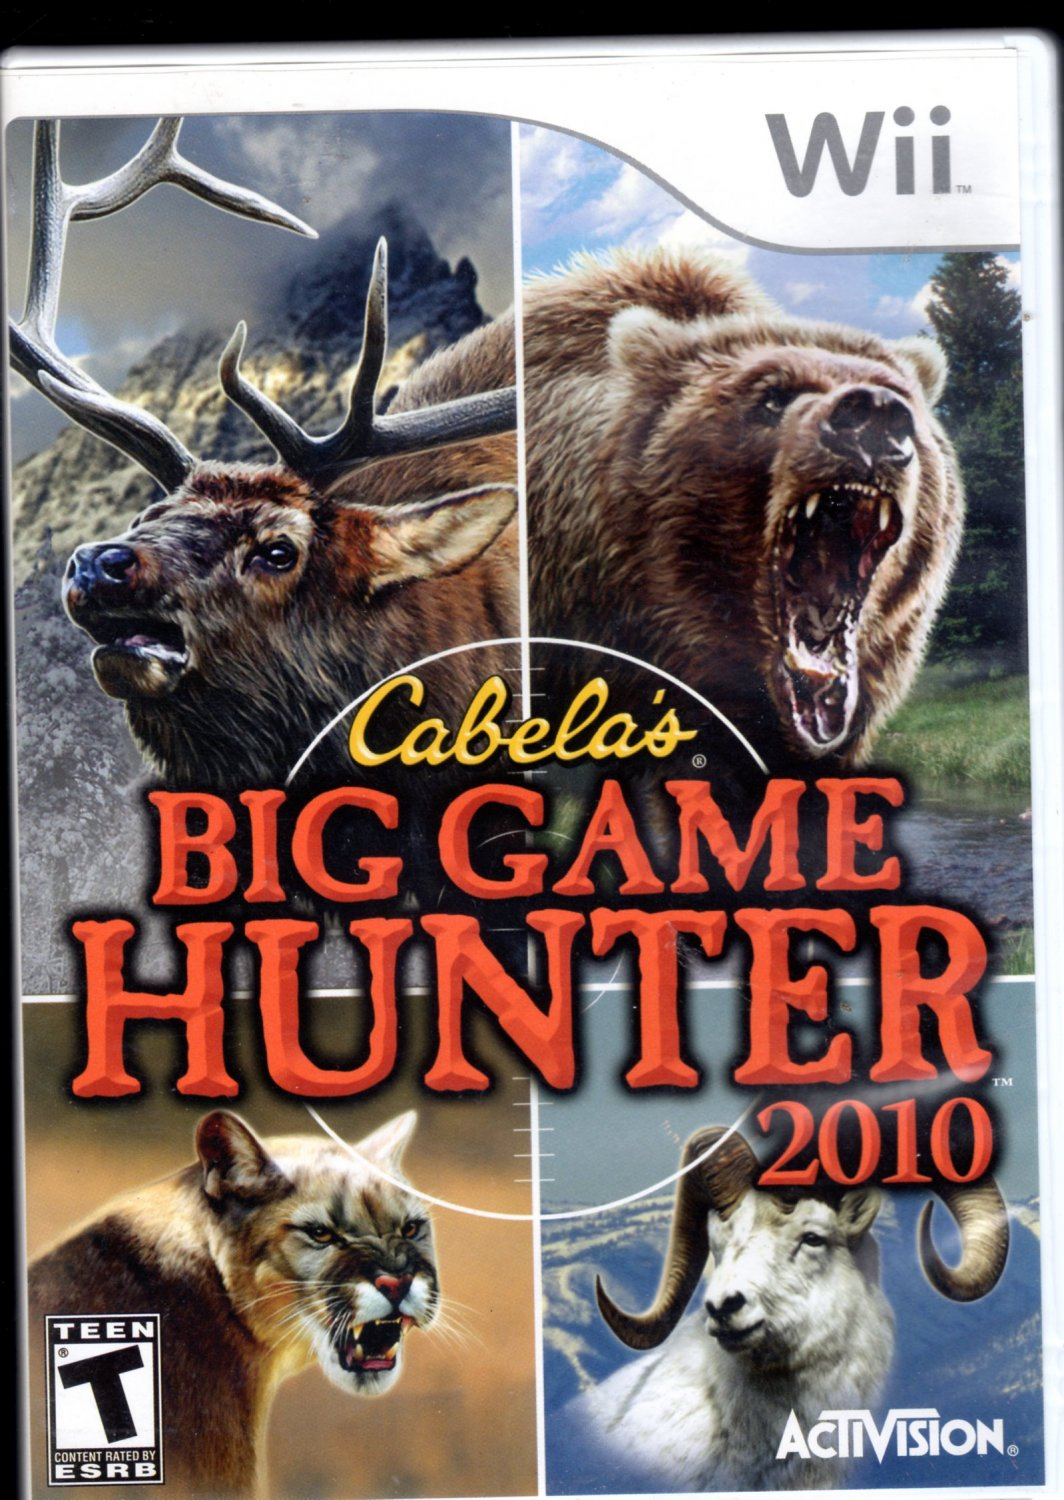 Cabela's Big Game Hunter 2010 Wii Game